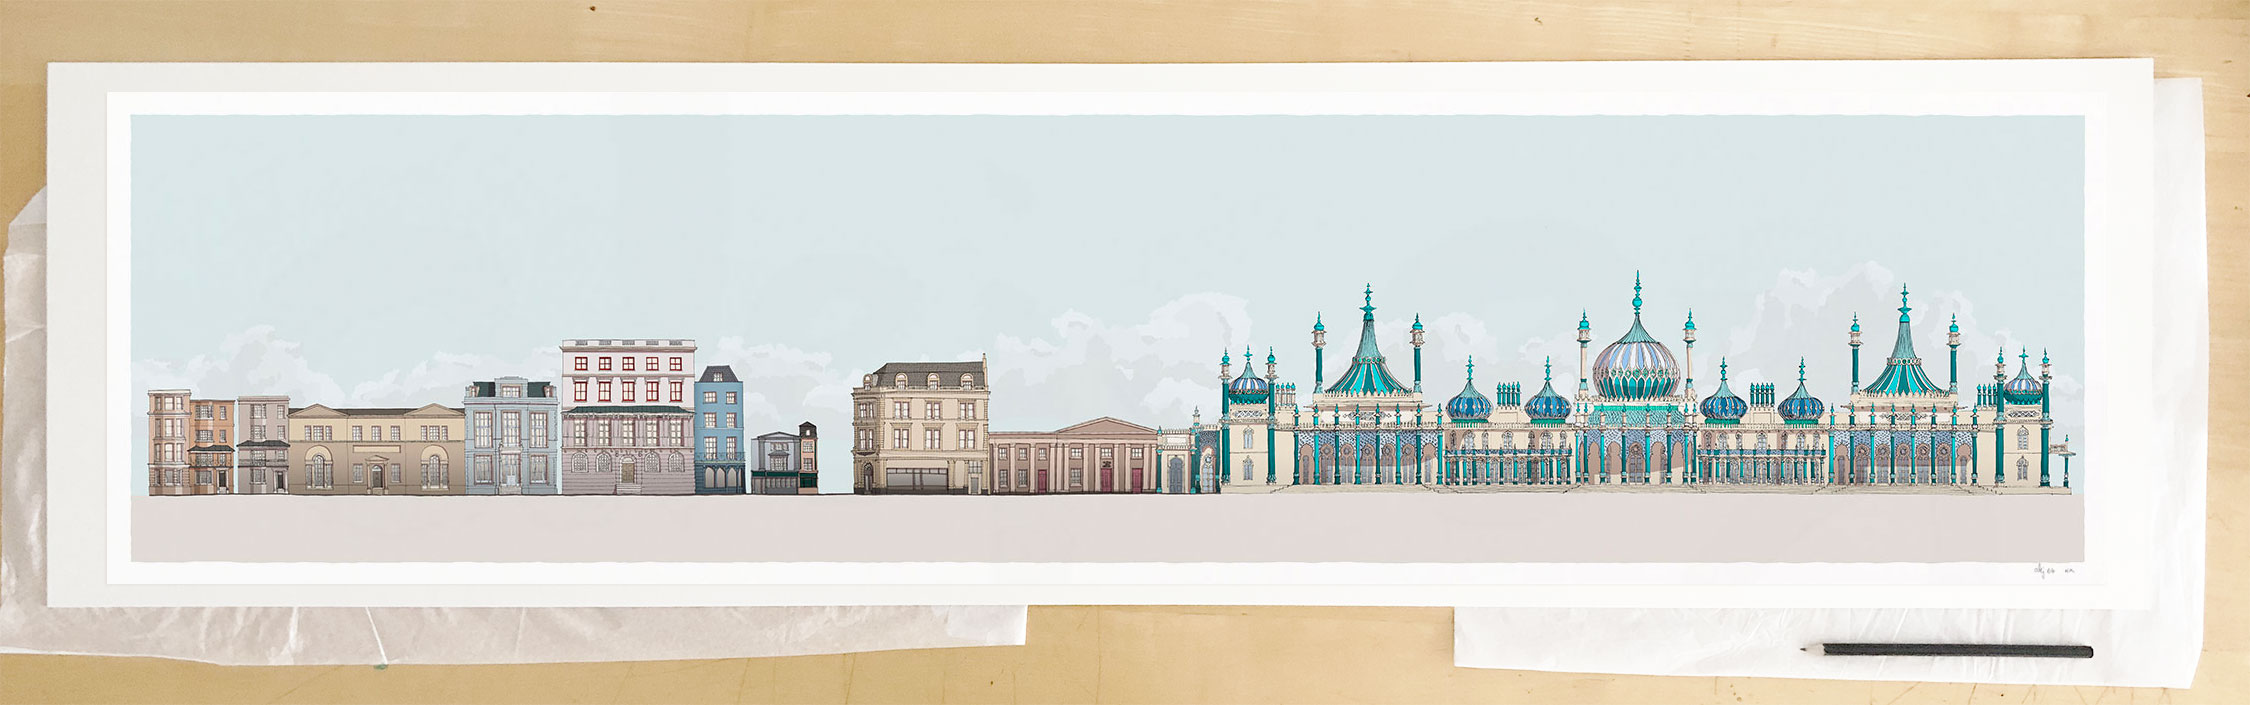 Fine art print by UK artist alej ez titled Hers and His Fitzherbert and George IV Brighton Pavilion Pebble Beach